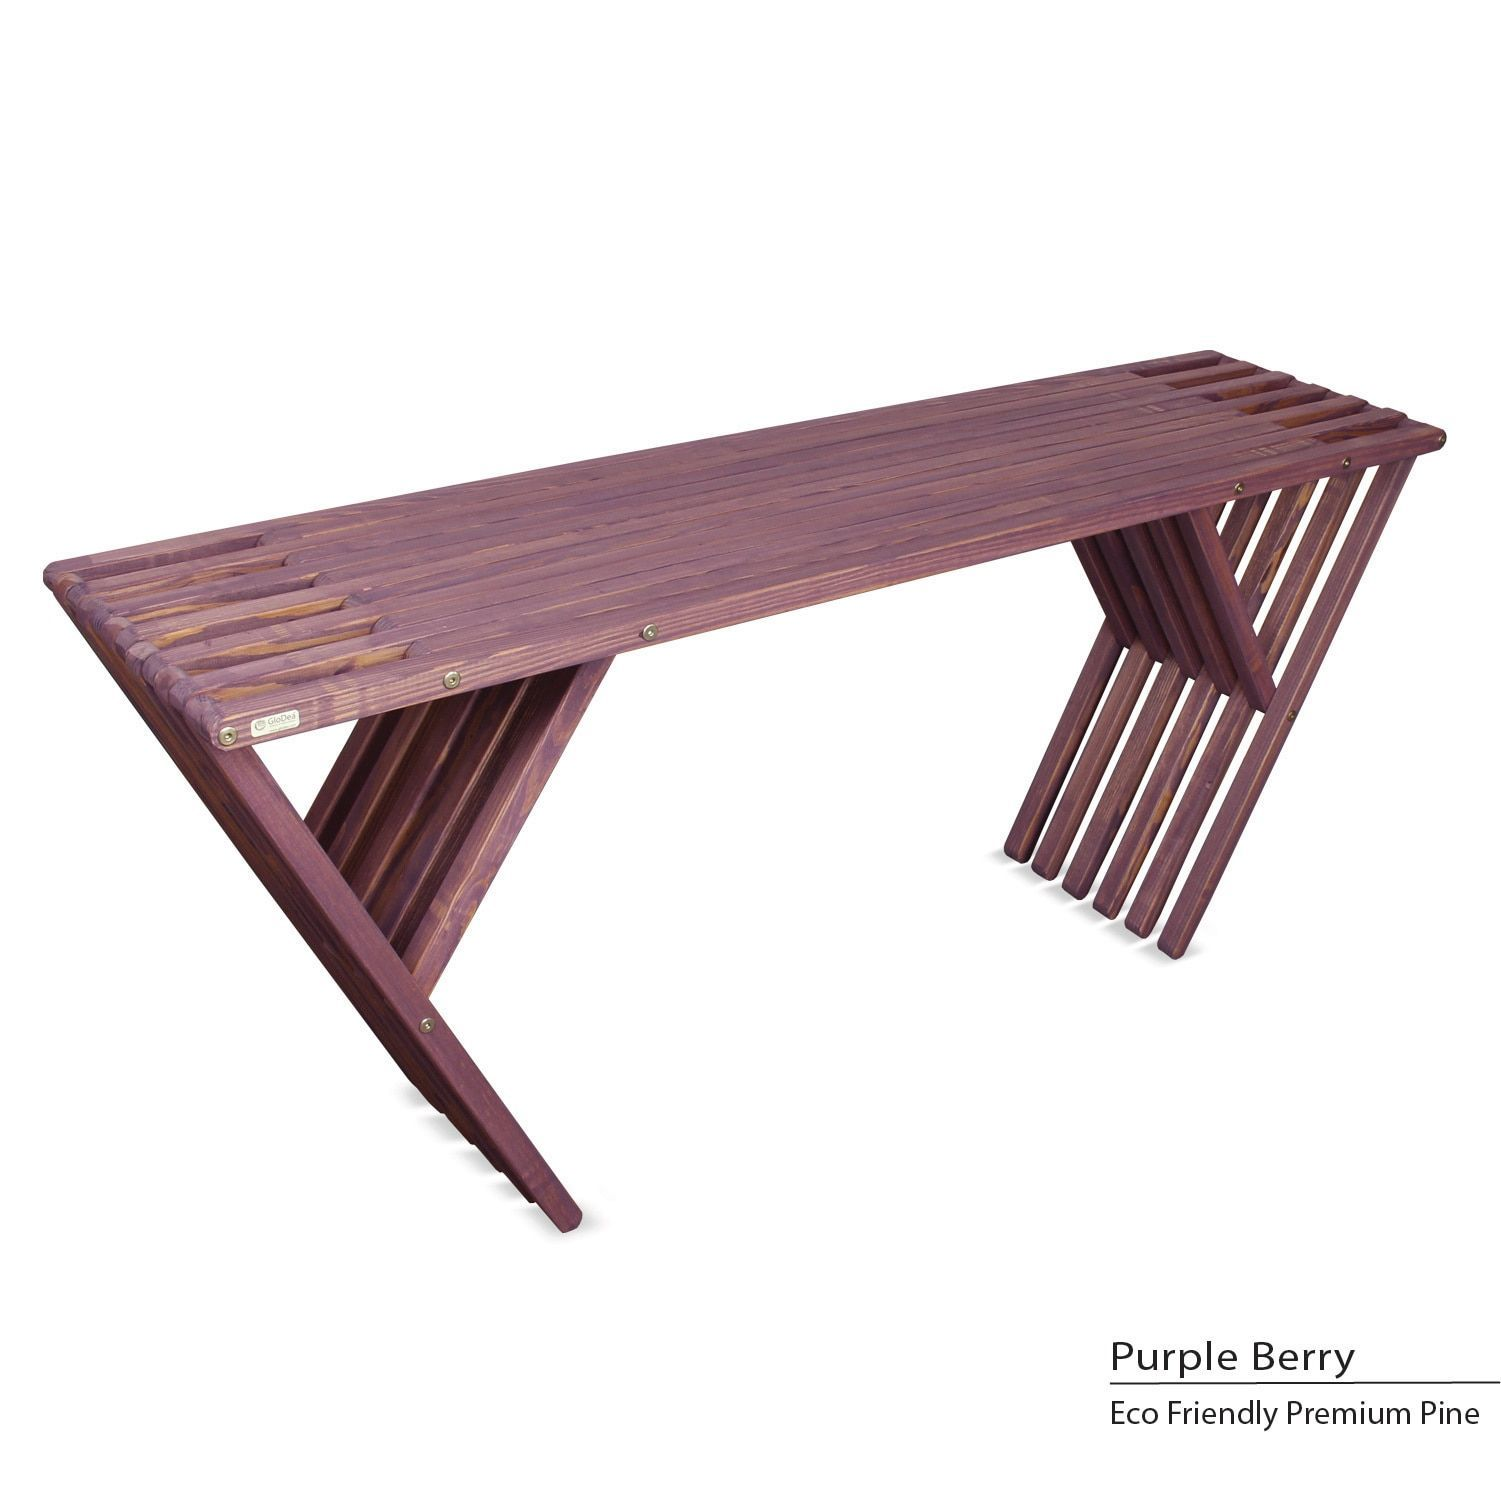 glodea eco friendly sideboard purple berry patio furniture outdoor table rectangular nesting tables gold bedroom accessories pier one off coupon code grey wood accent narrow